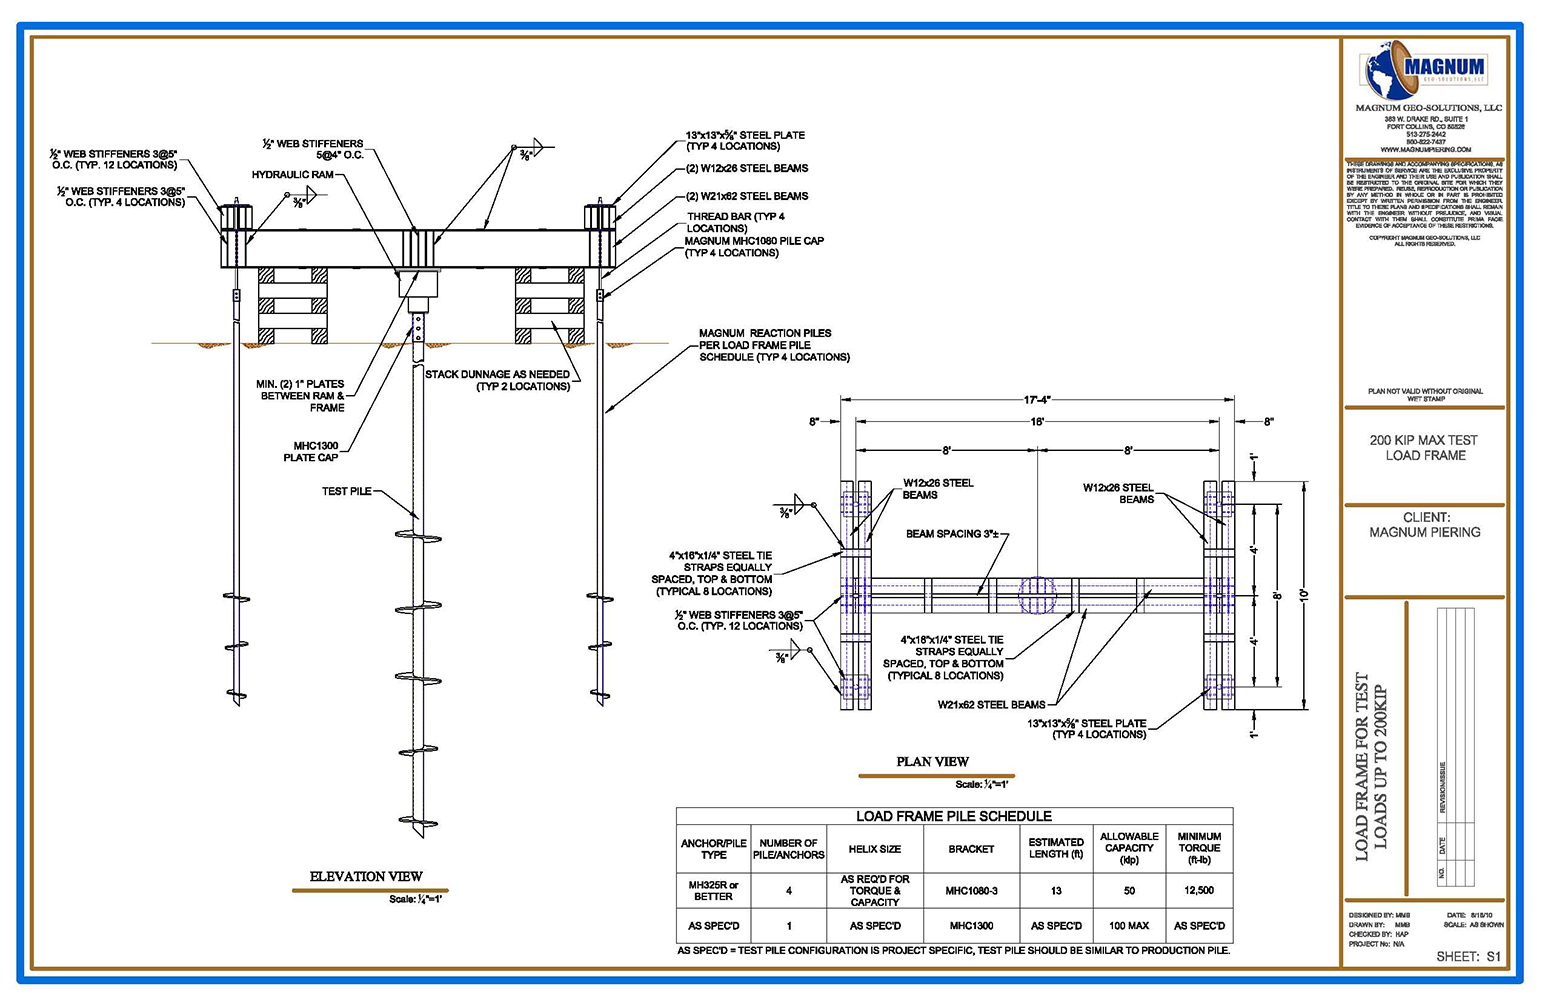 100 Ton Load Frame Magnum Pieringmagnum Piering Beam Loading Diagram Test Drawing